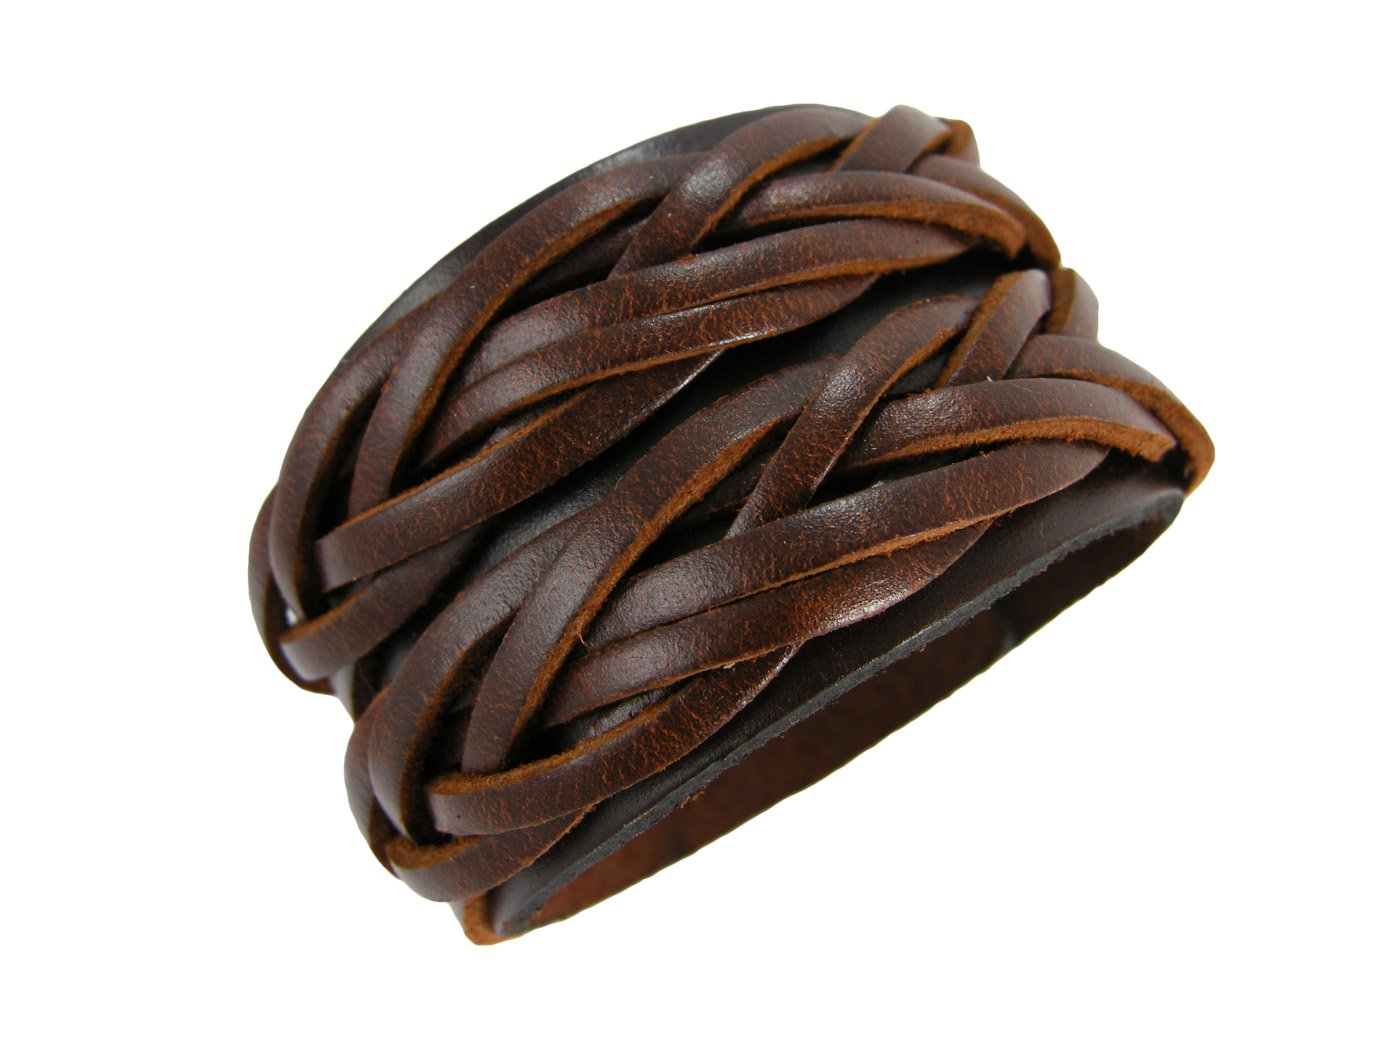 BrownBeans, Braided Design Quality Brown Women's Leather Bracelet (LBCT8044) by BrownBeans